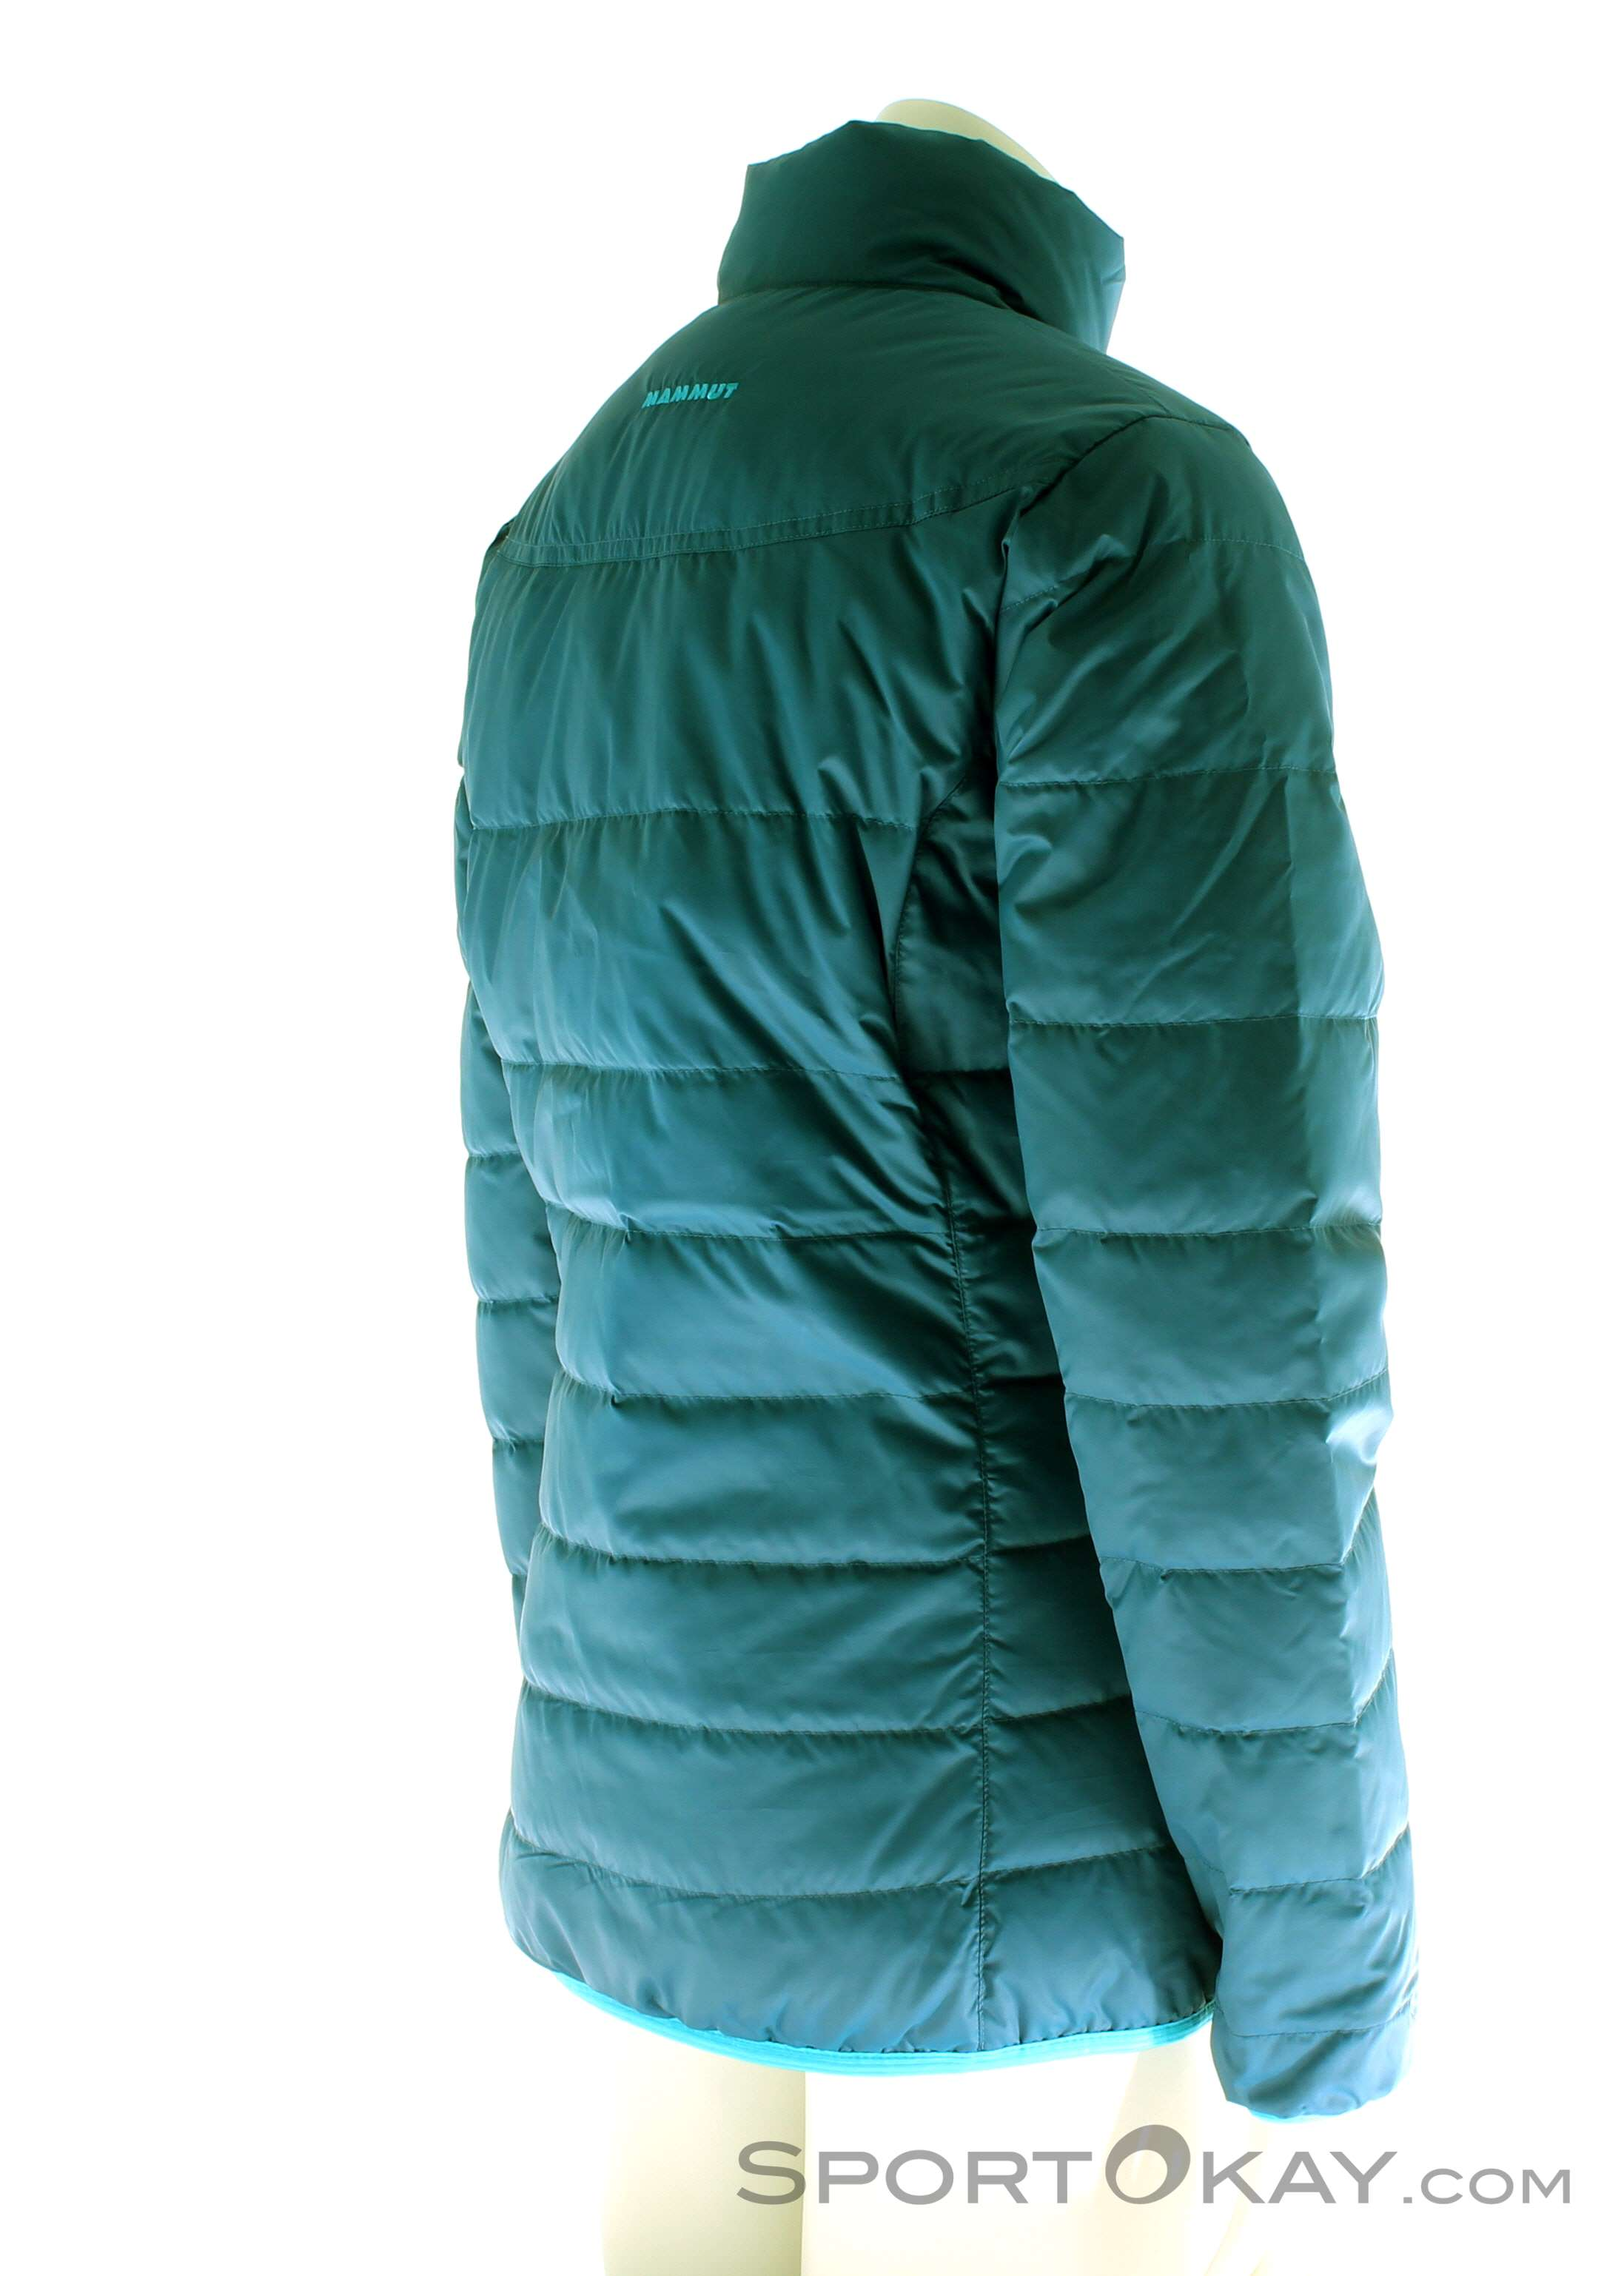 Mammut Whitehorn IN Jacket Donna Giacca da Sci Alpinismo - Giacche ... 41876a435d2